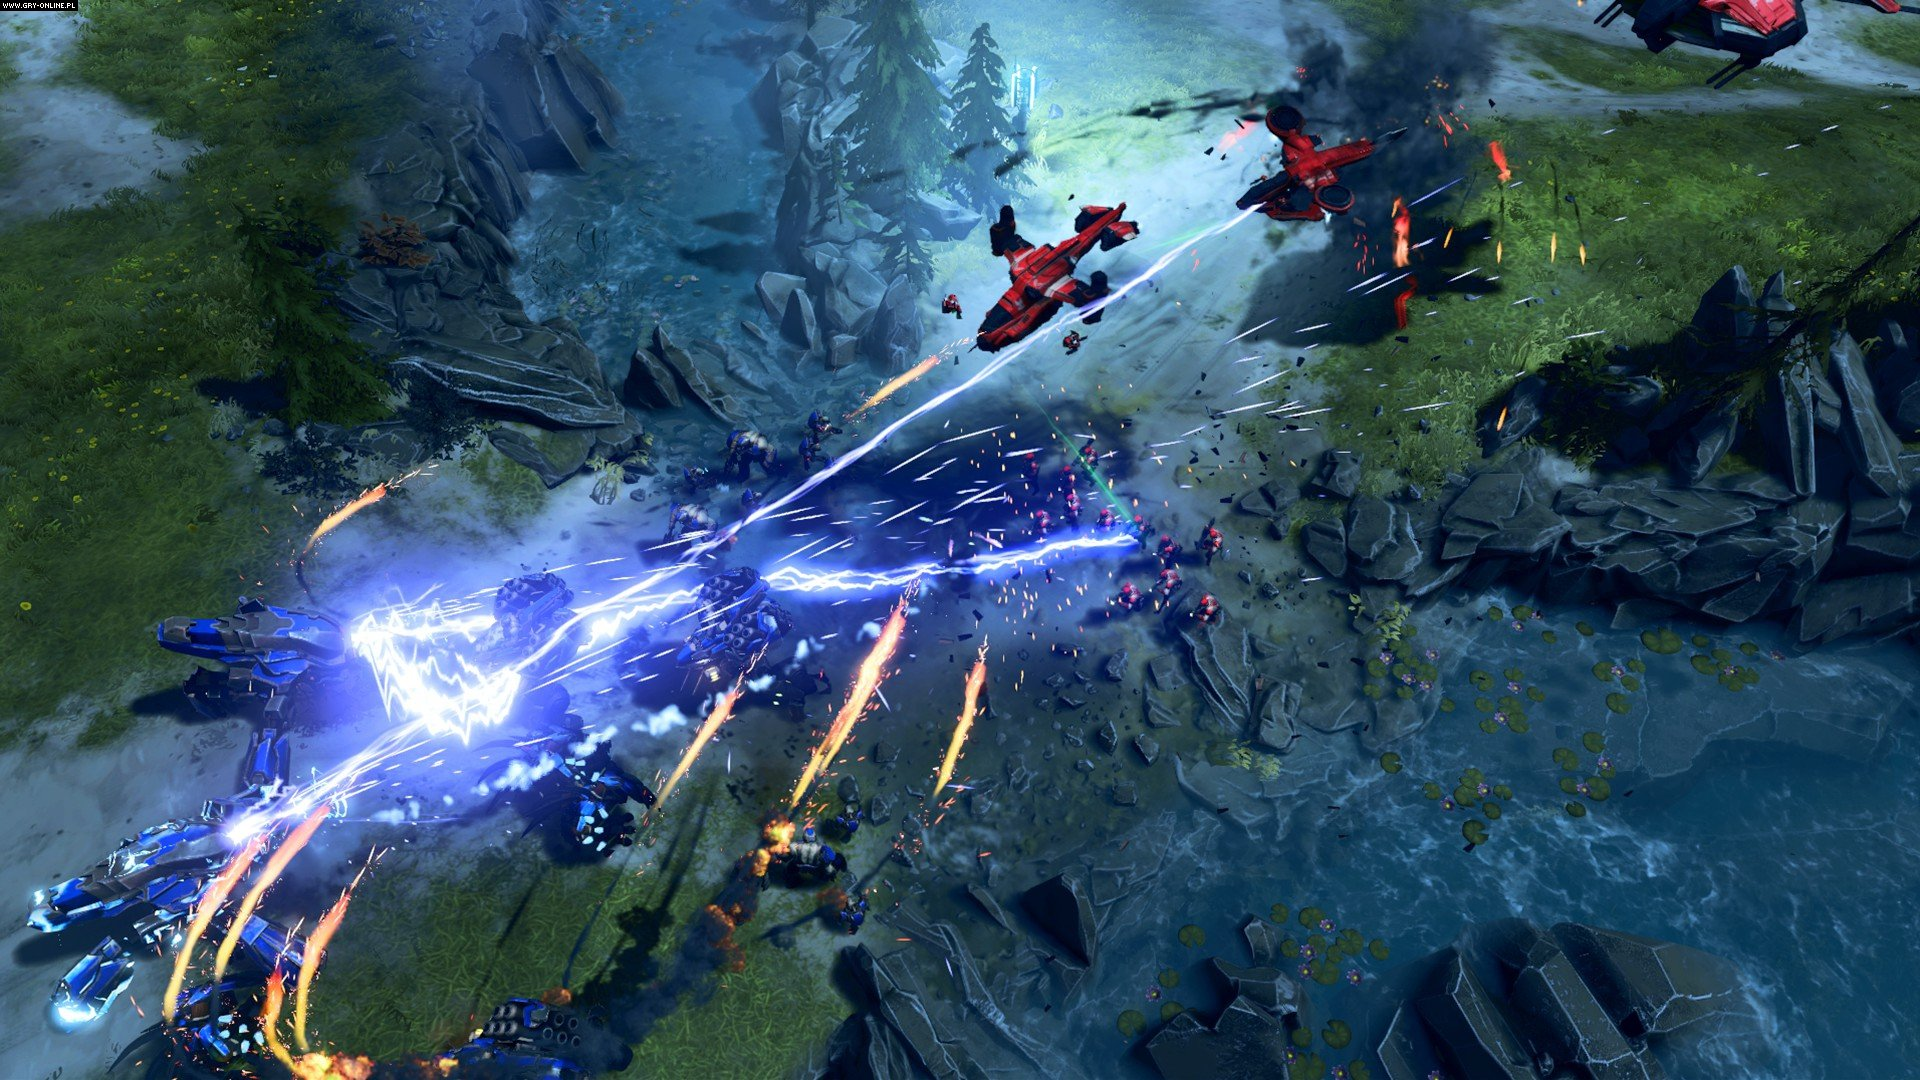 Halo Wars 2 PC, XONE Games Image 6/18, Creative Assembly, THQ Nordic / Nordic Games